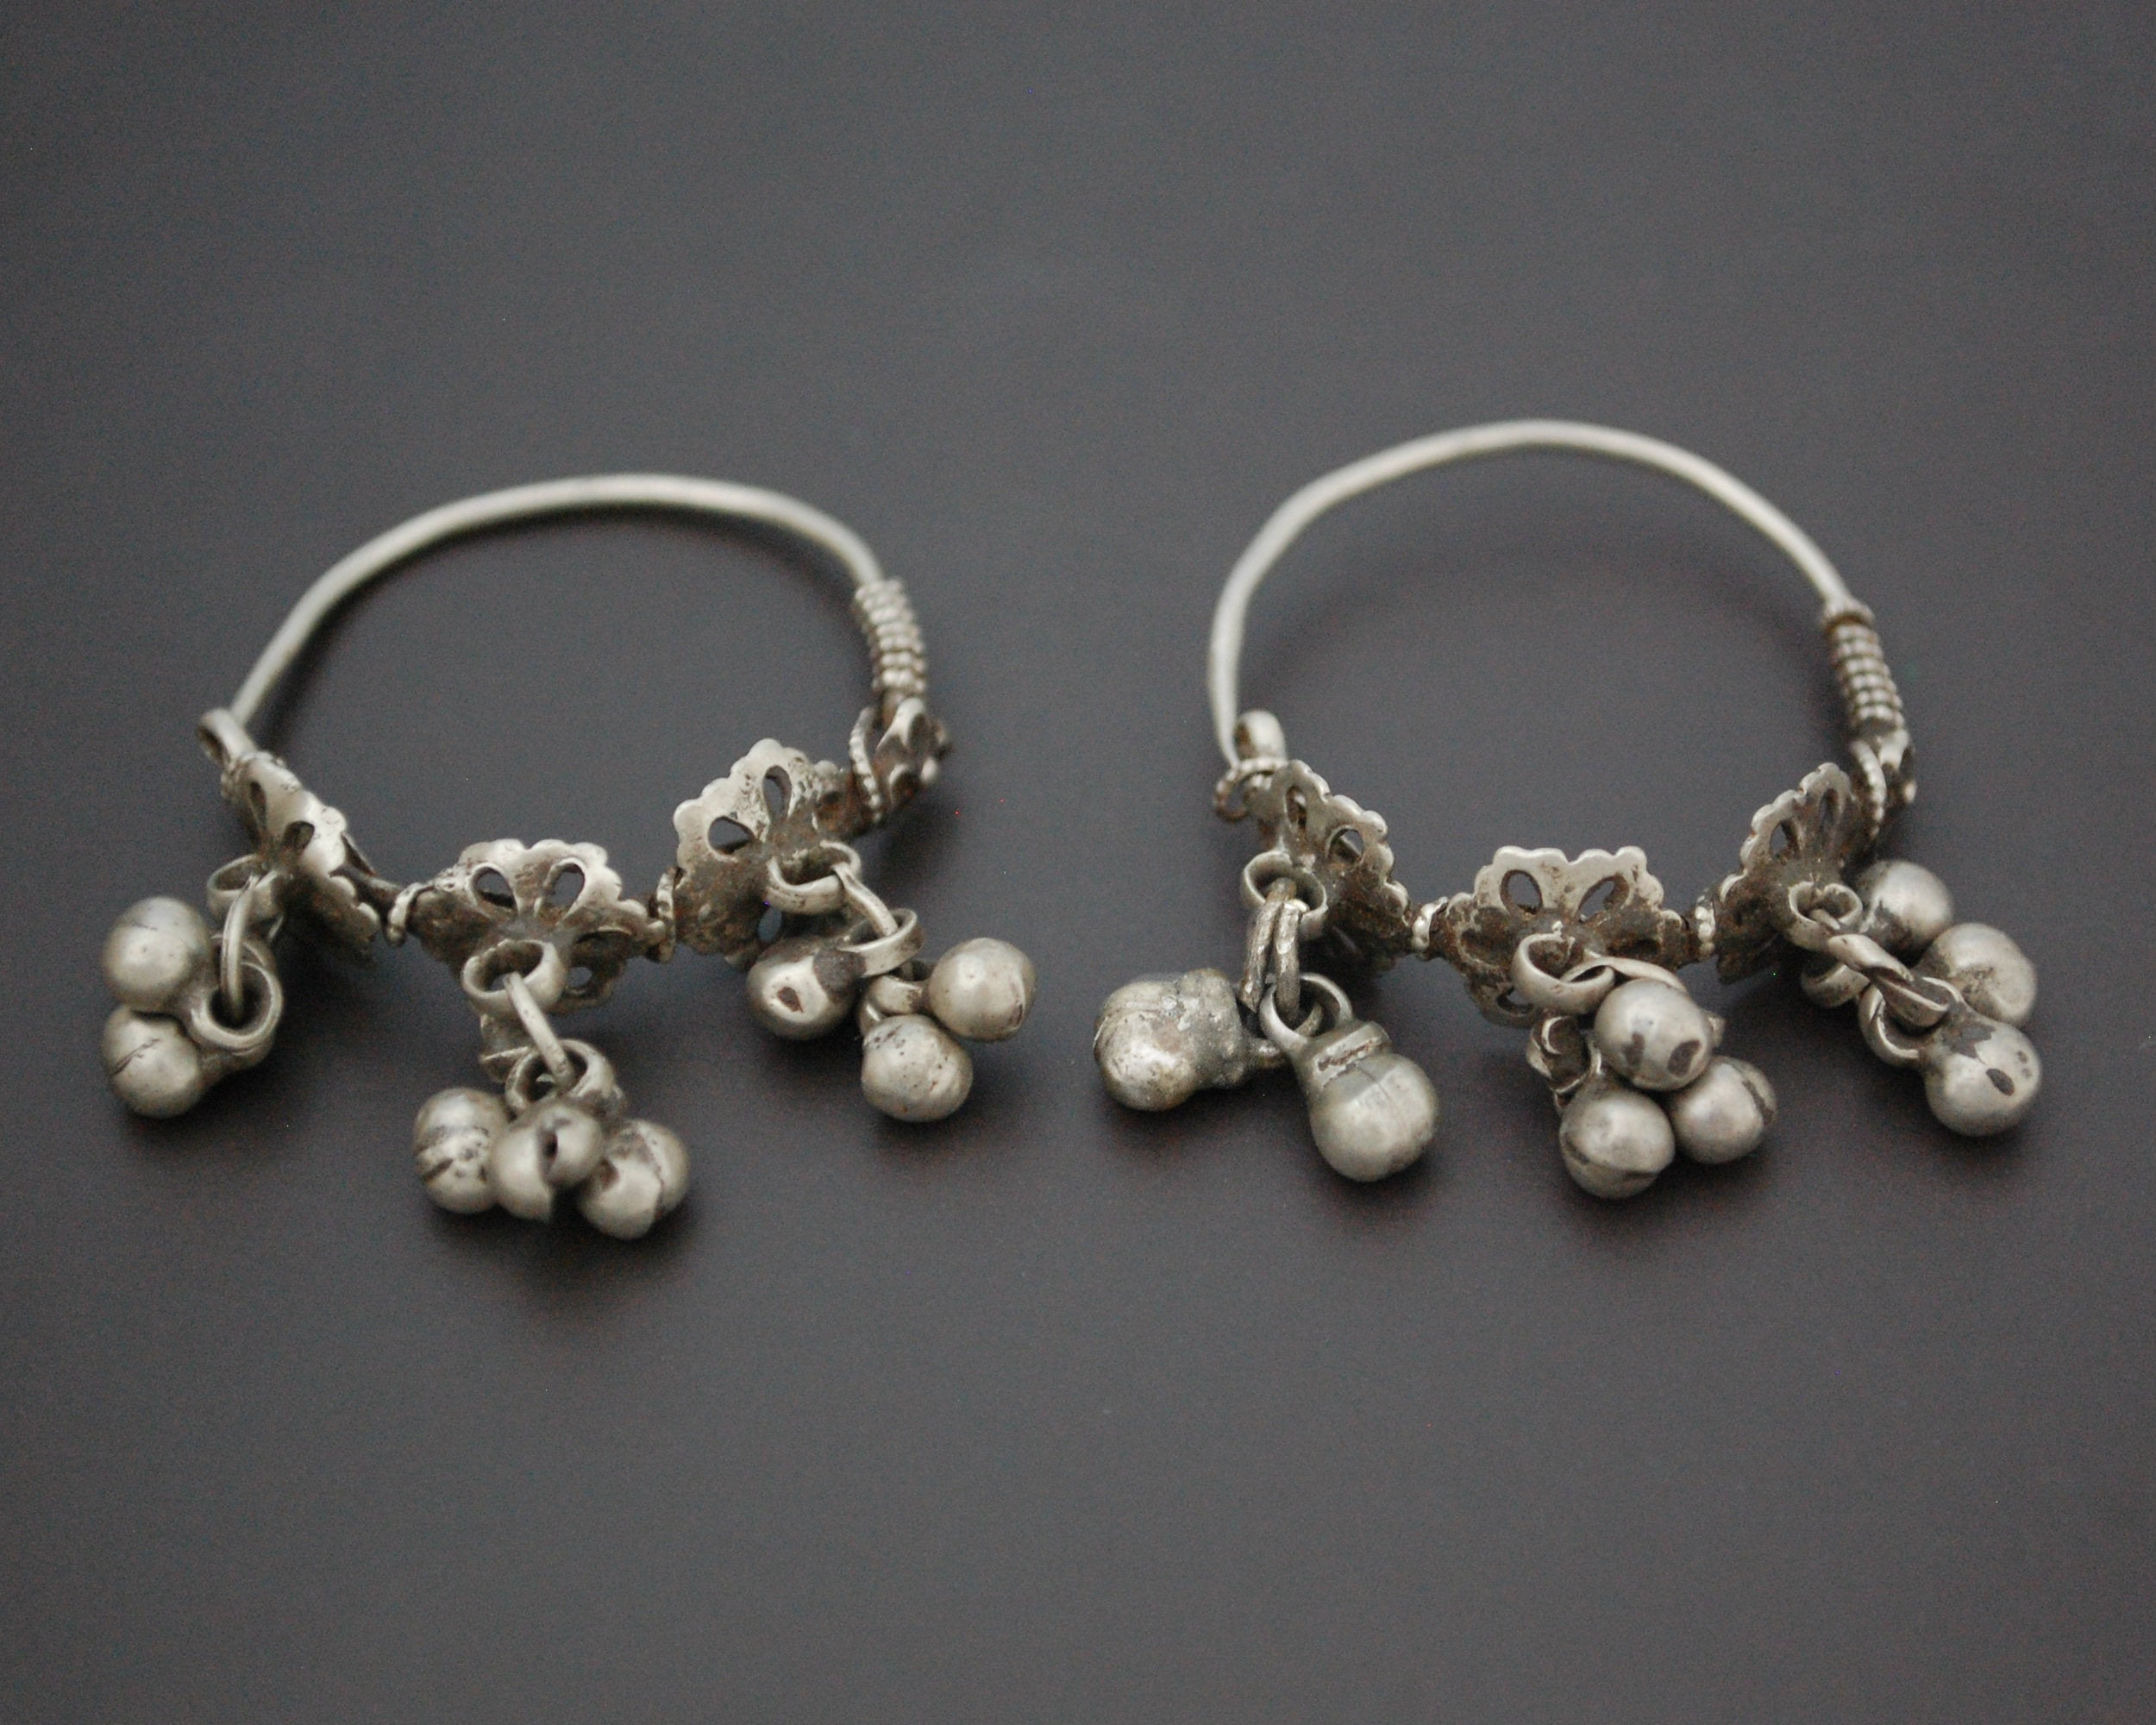 Rajasthani Hoop Earrings with Bells